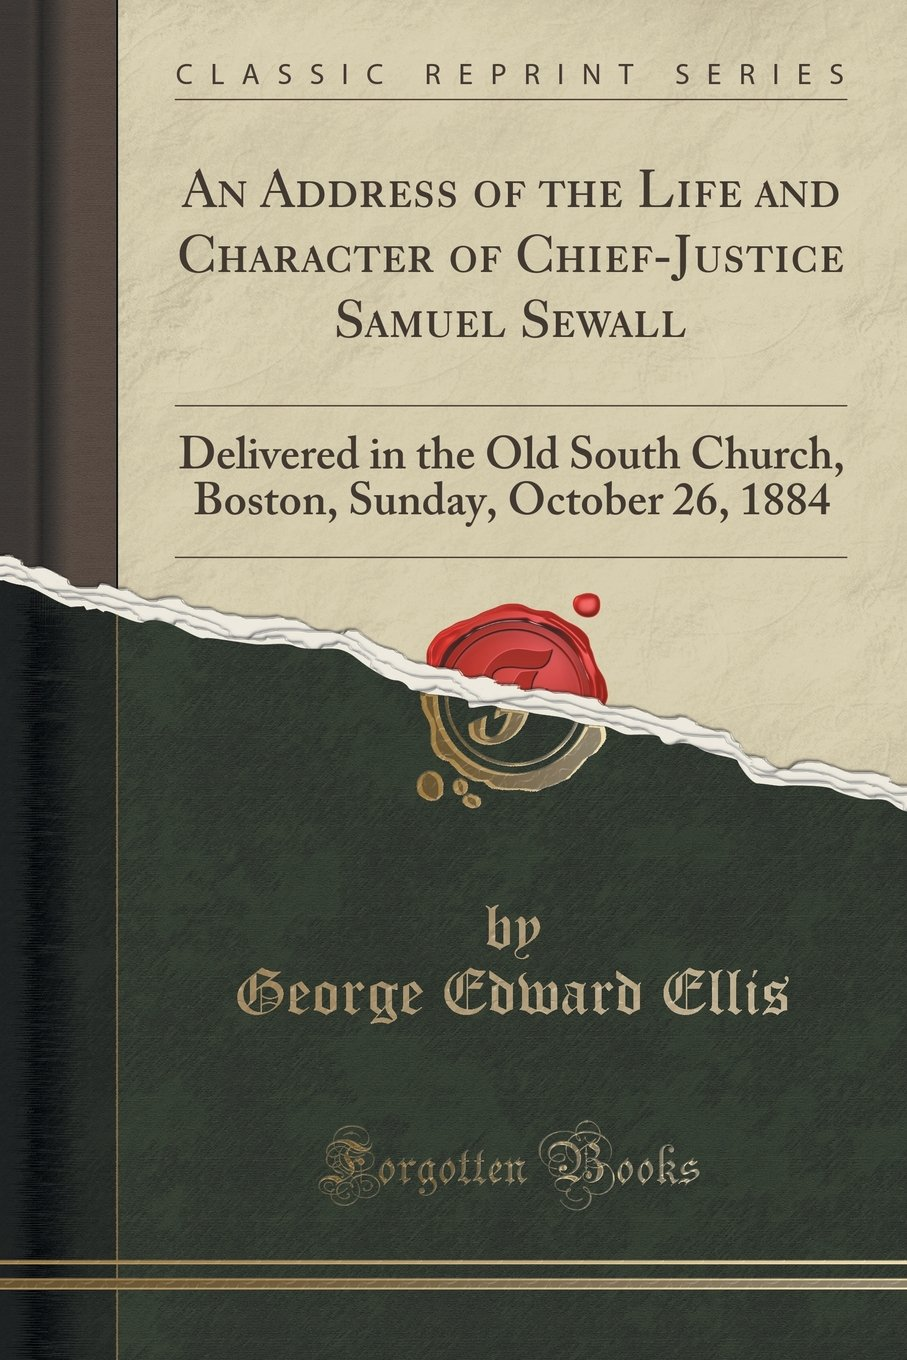 Download An Address of the Life and Character of Chief-Justice Samuel Sewall: Delivered in the Old South Church, Boston, Sunday, October 26, 1884 (Classic Reprint) PDF